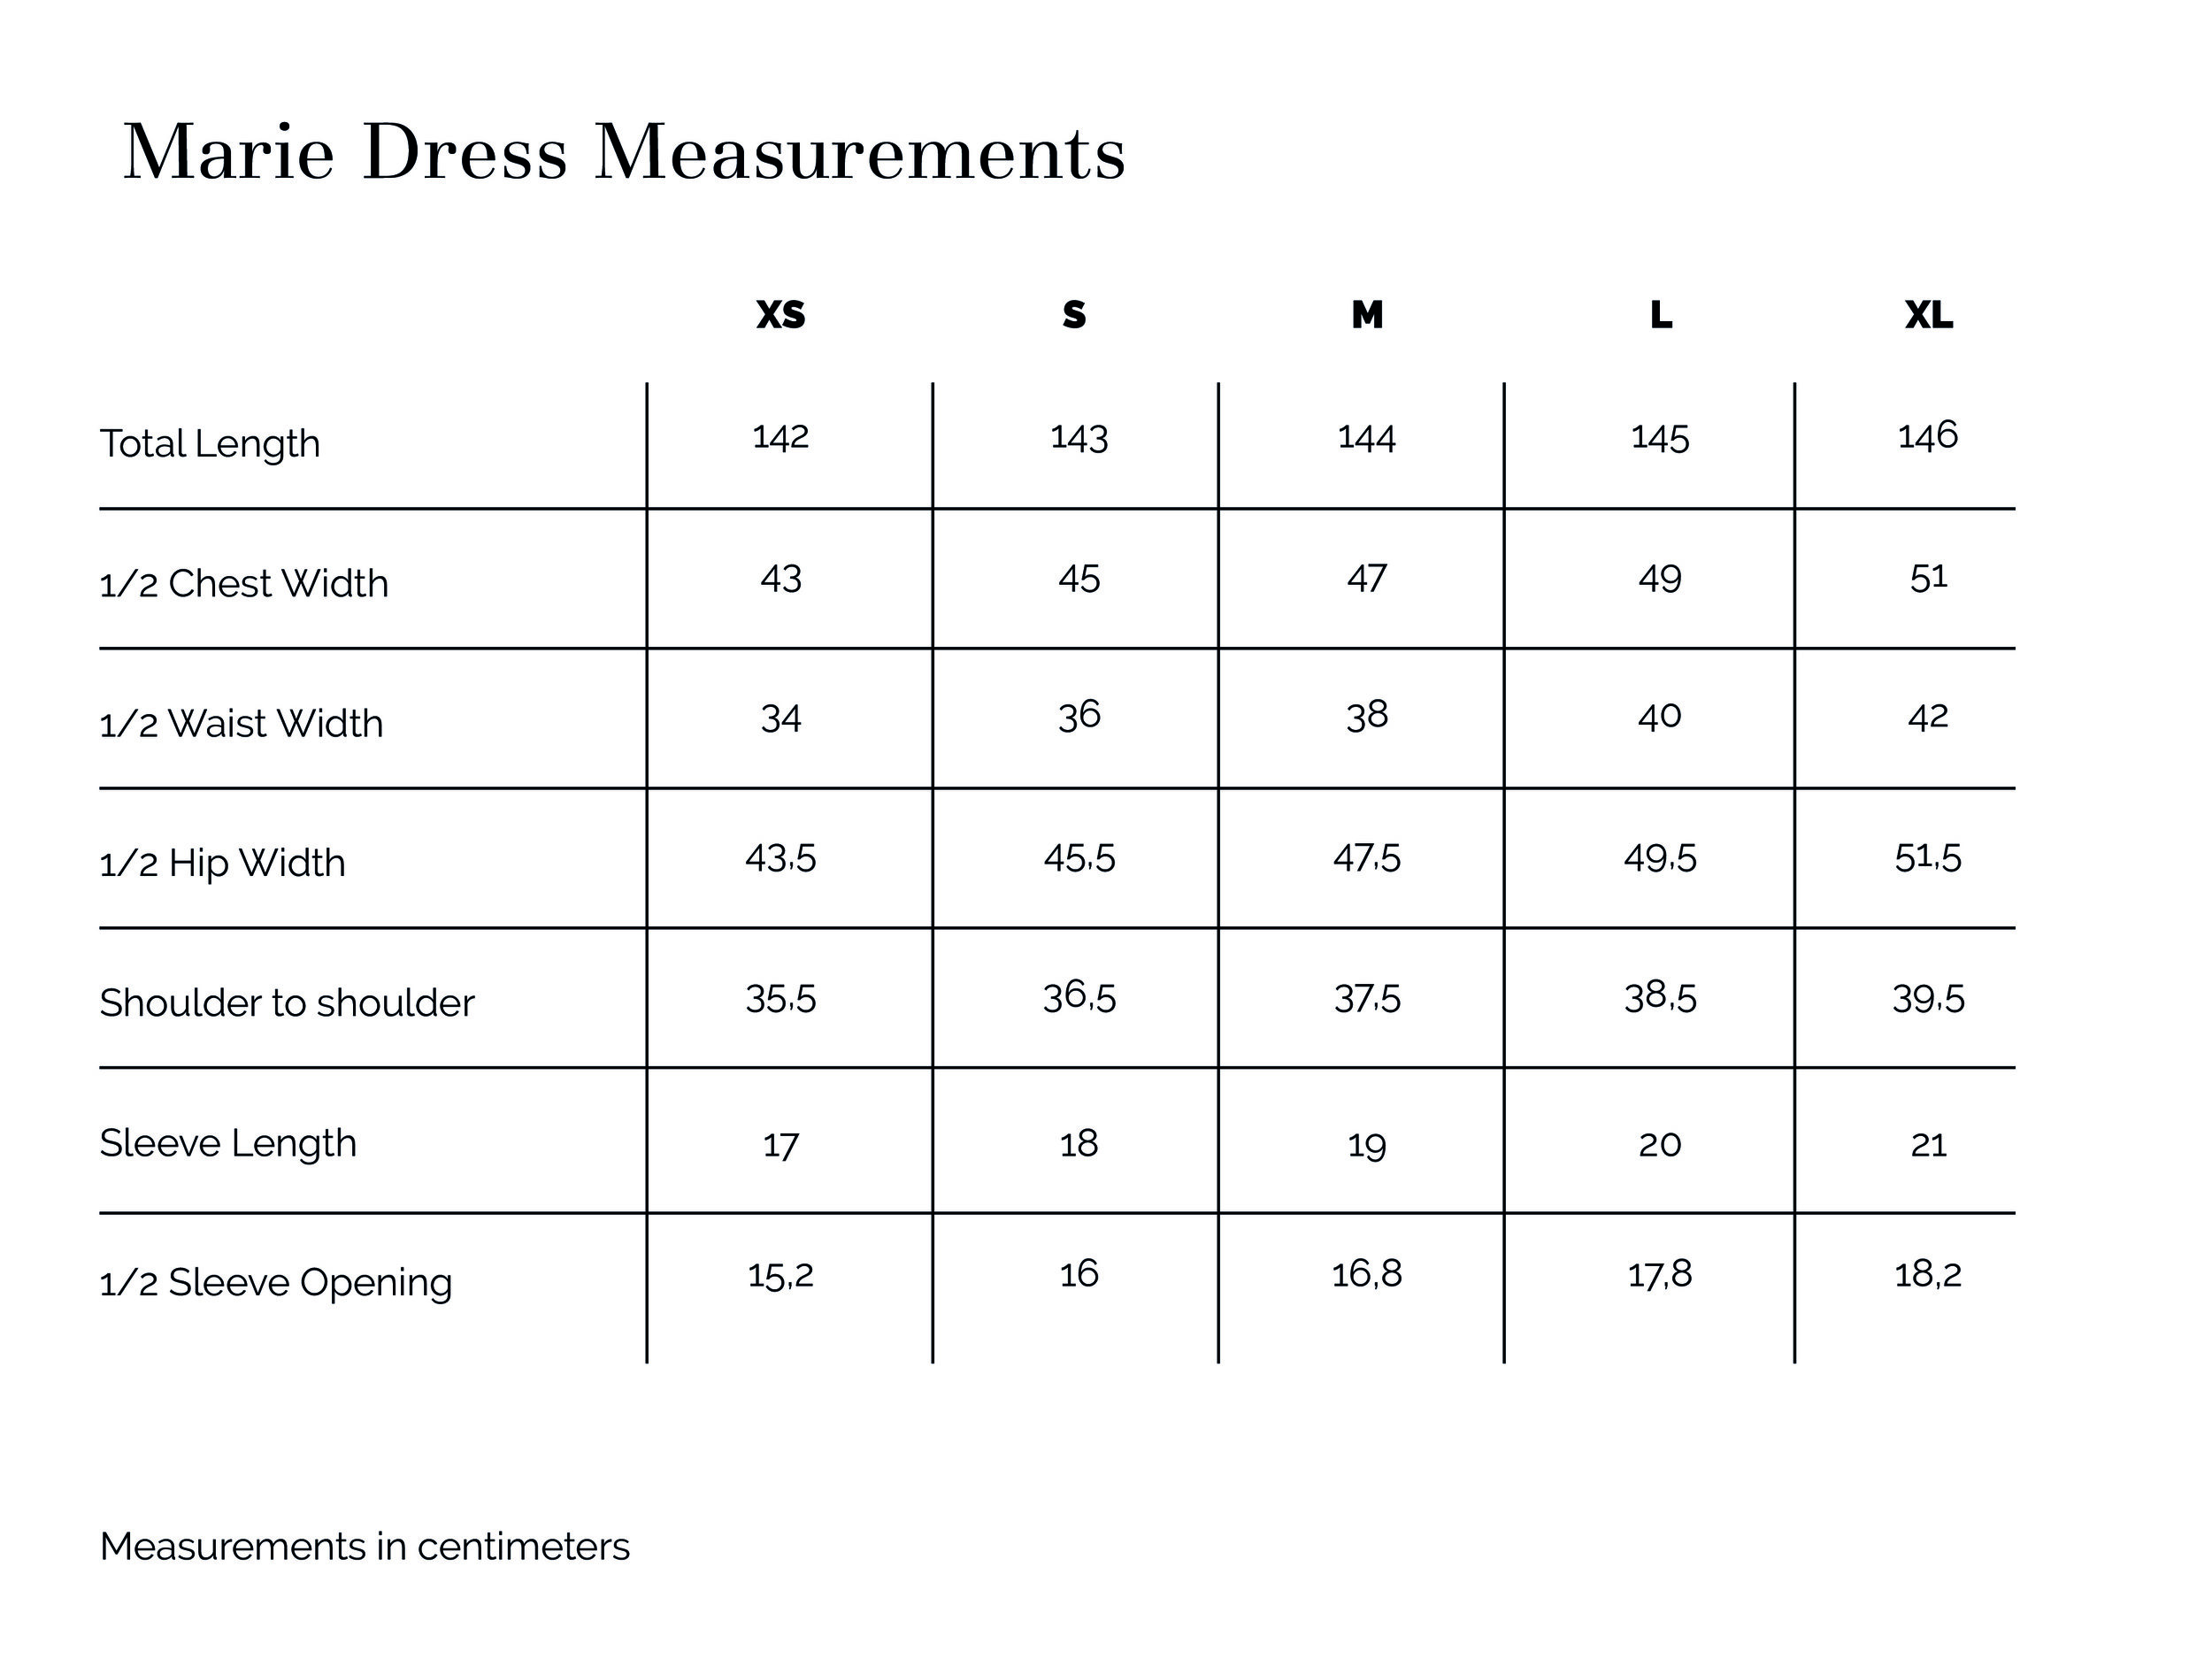 Marie Dress Measurements